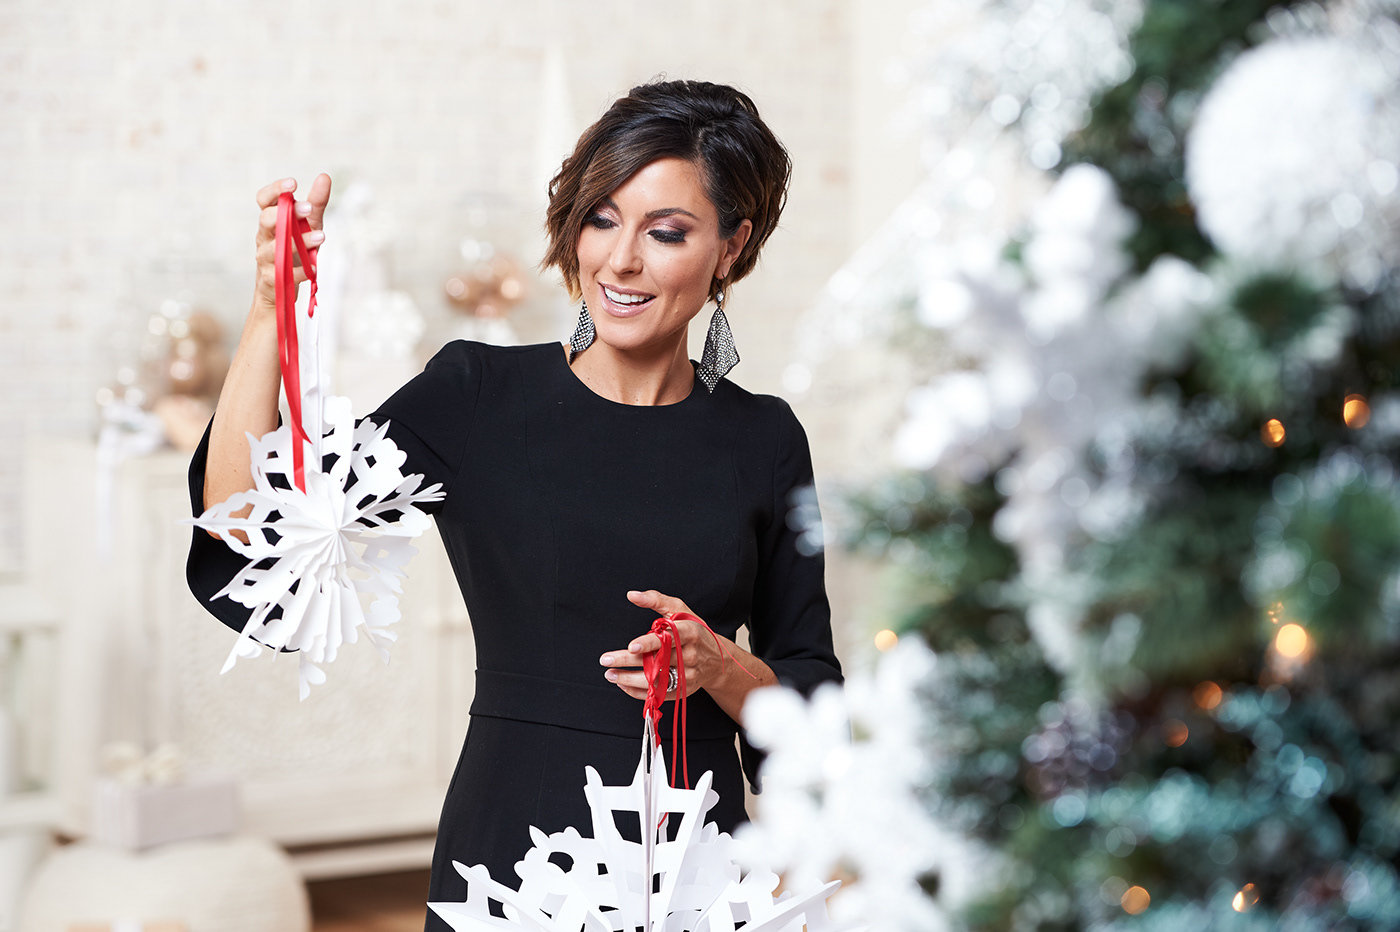 Photoshoot Direction: Xmas QVC Hosts by Stephanie White at